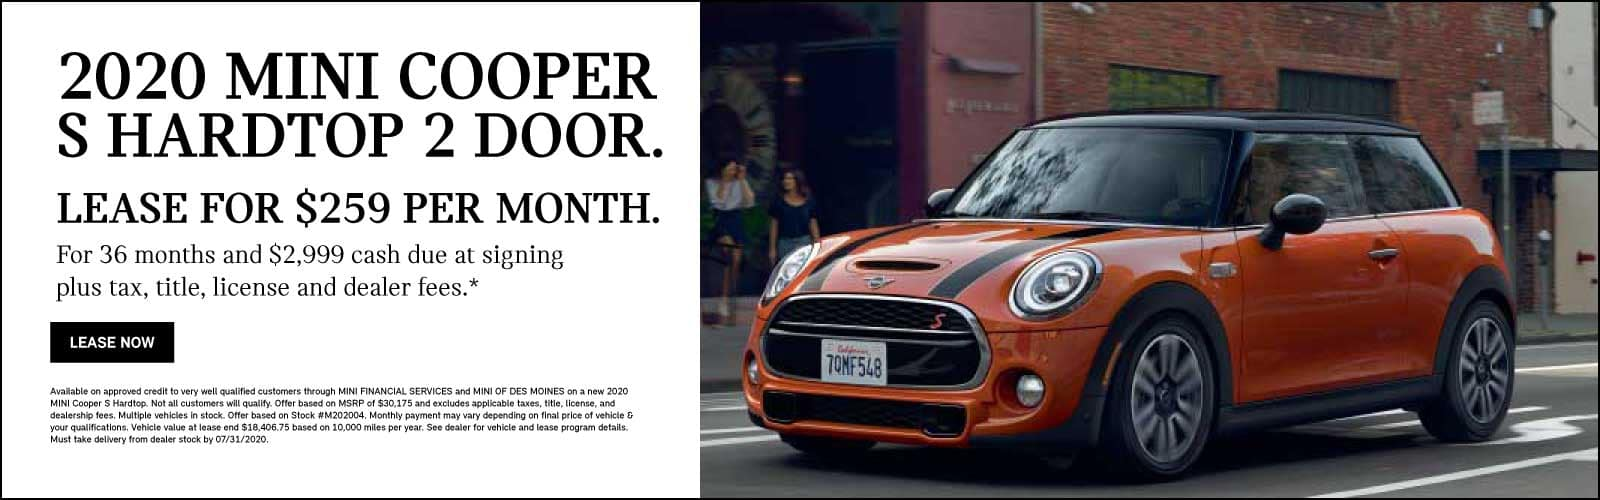 Lease MINI 2020 Cooper S Hardtop $259 per month 36 month 10,000 miles a year $2,999 due at signing plus tax, title, license and dealer fees.